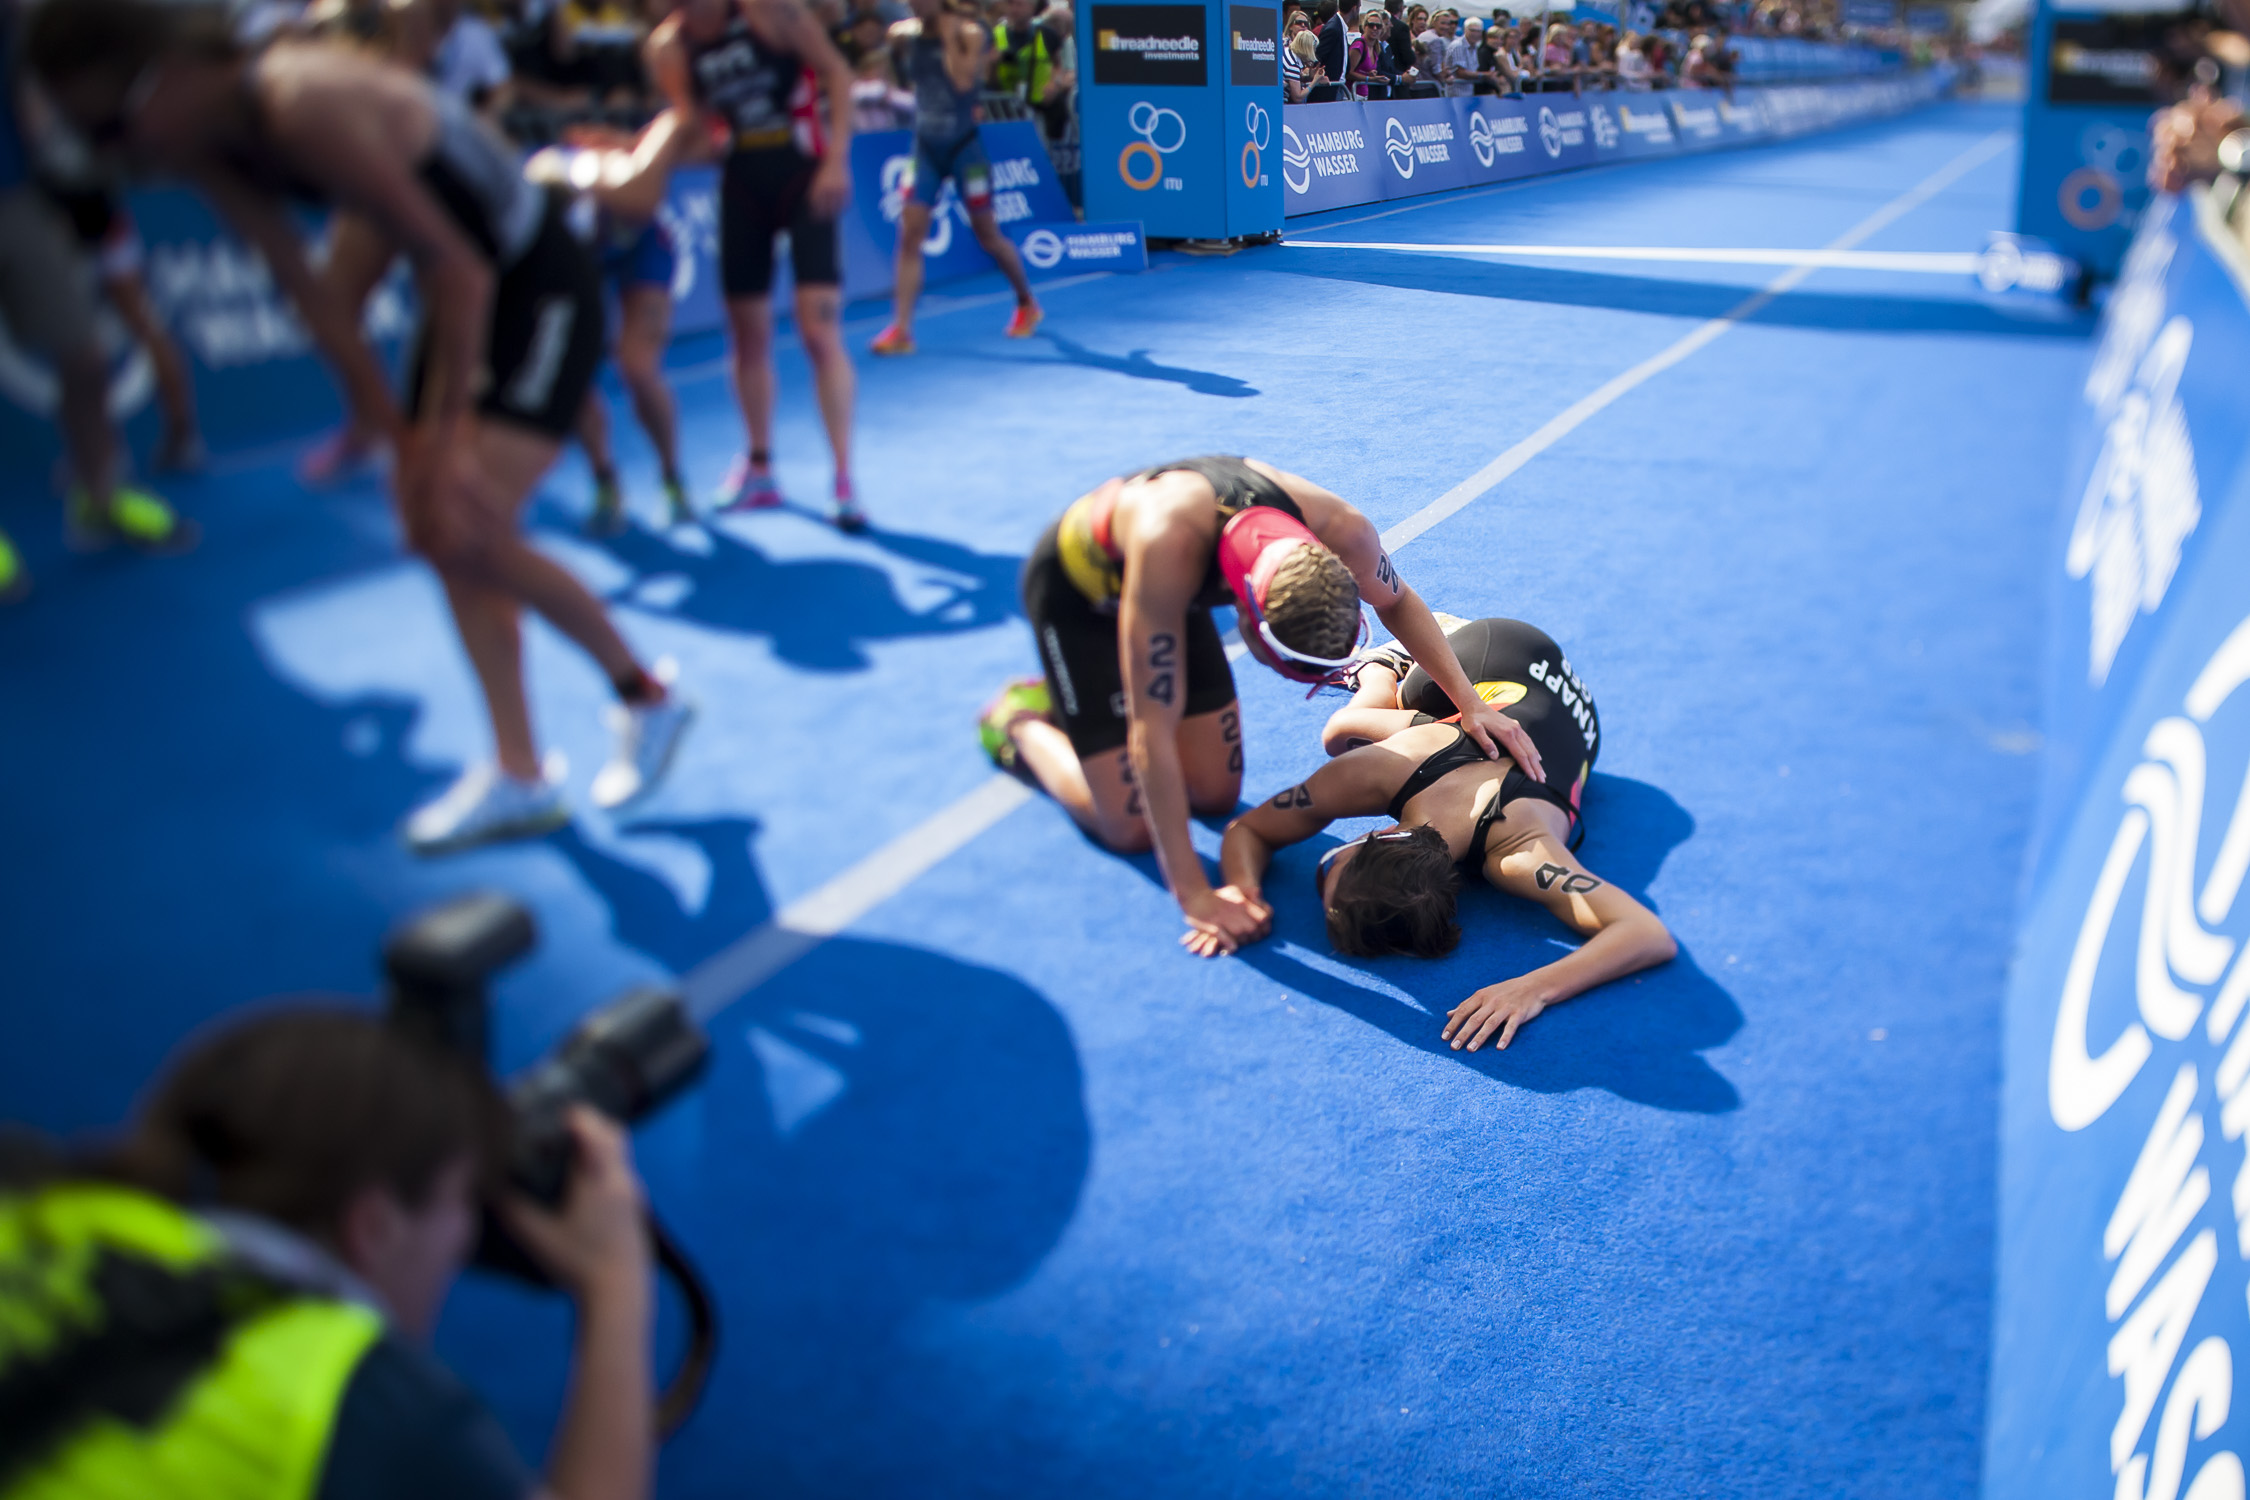 ITU World Triathlon Series Hamburg 2014